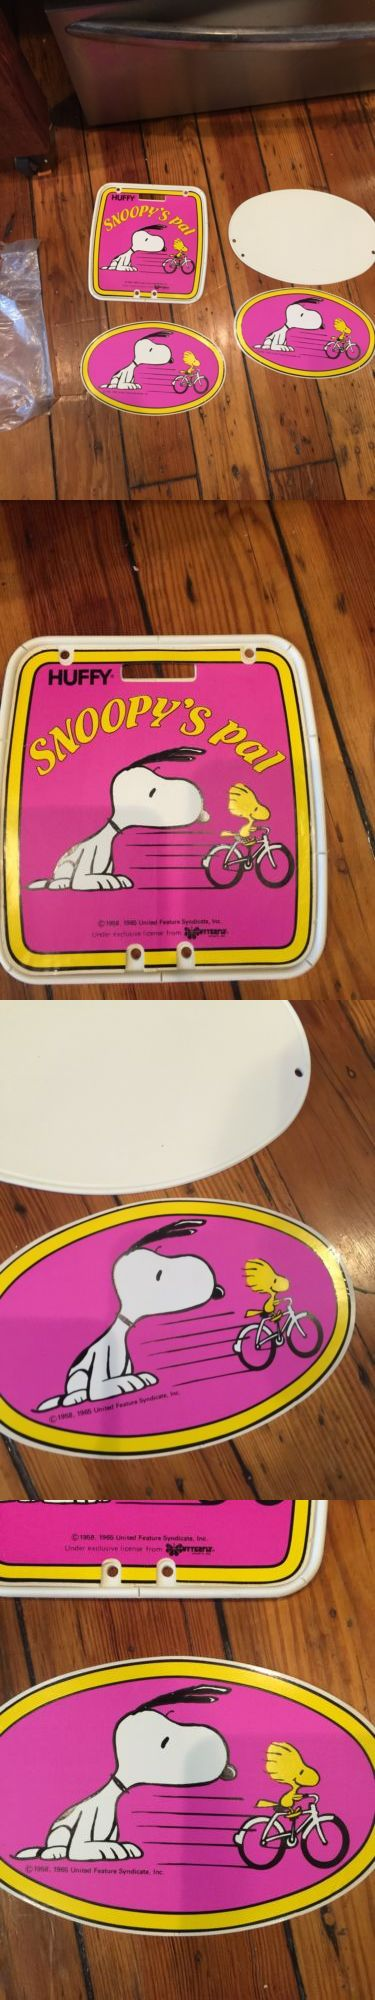 Decals Stickers 106953: Rare Nos Old School Huffy Snoopys Pal Number Plates-Bmx-Woodstock-Peanuts-Muscle -> BUY IT NOW ONLY: $135 on eBay!